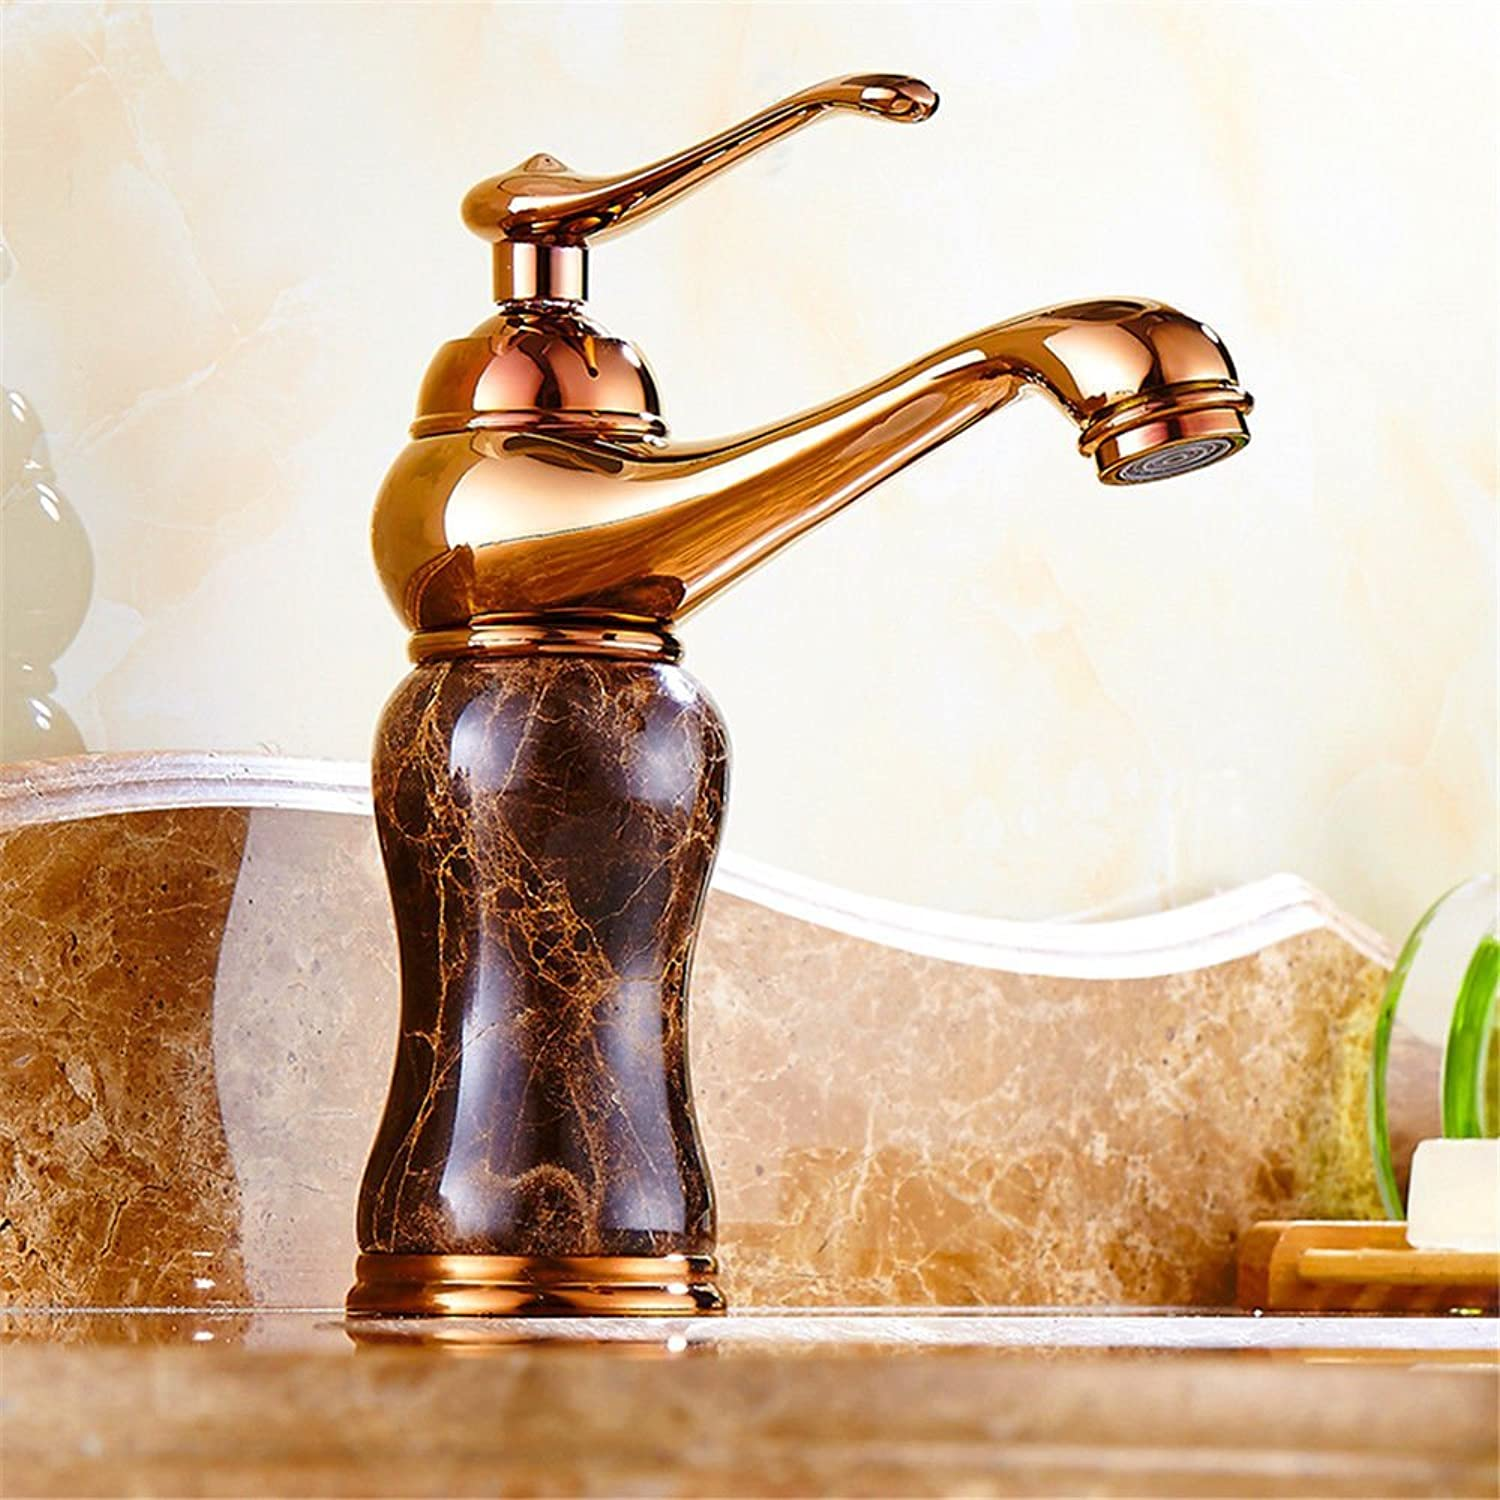 SADASD Modern Bathroom Basin Faucet Copper Sapphire Marble Washbasin Sink Taps Ceramic Valve Single Hole Single Handle Hot and Cold Mixer Tap With G1 2 Hose